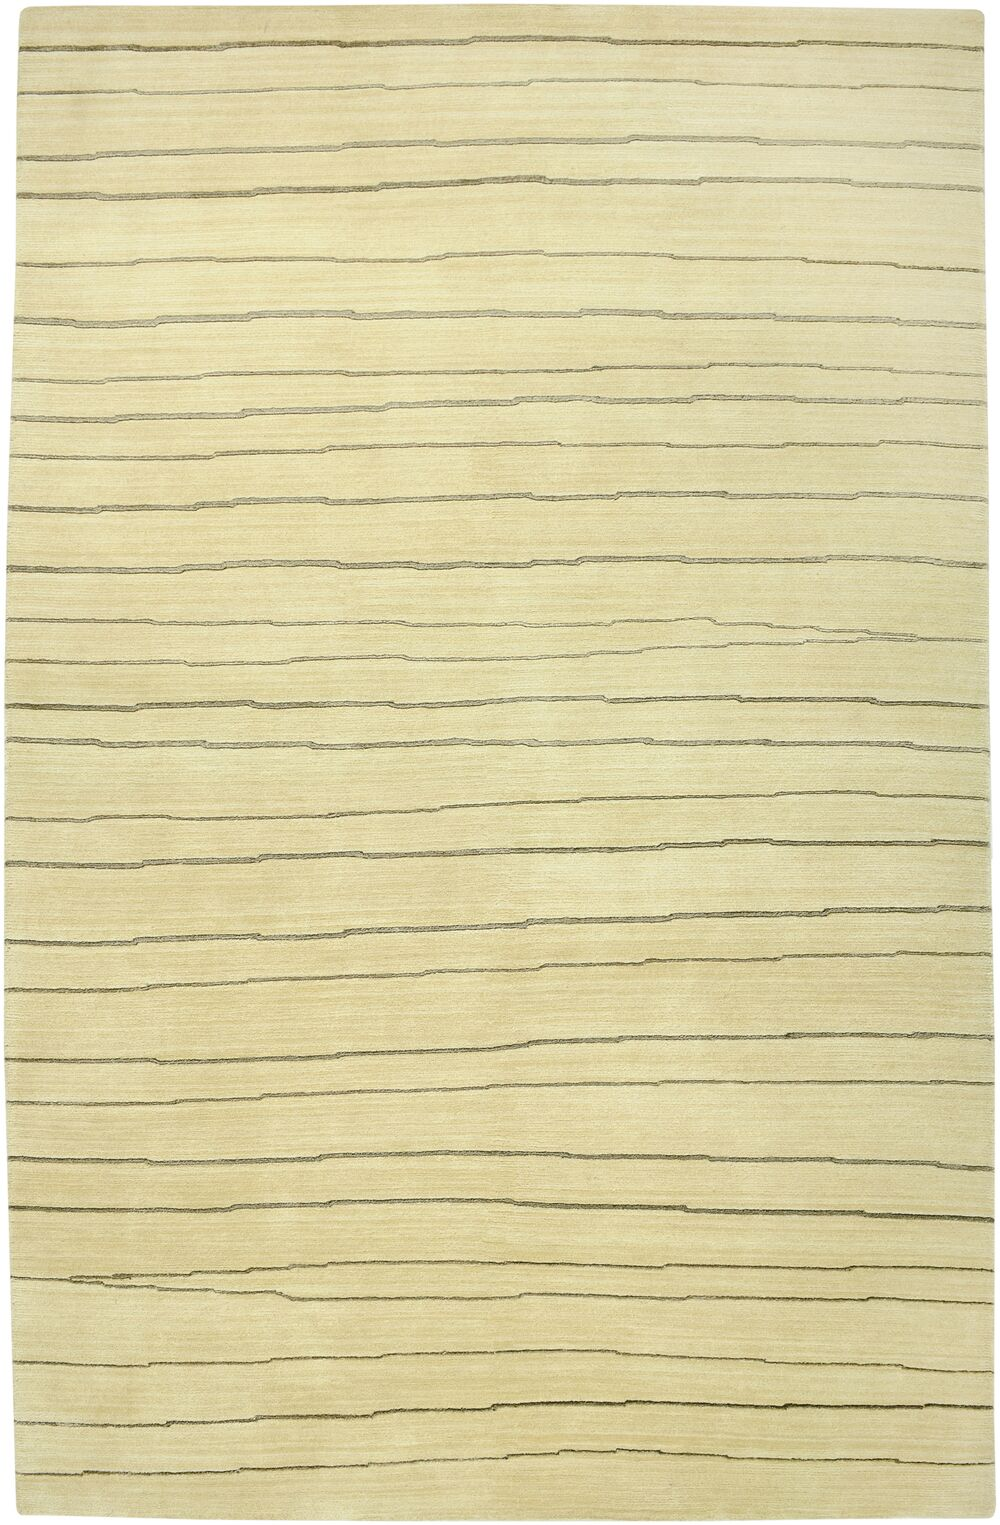 Wankaner Hand-Knotted Ivory Area Rug Rug Size: Rectangle 3'6